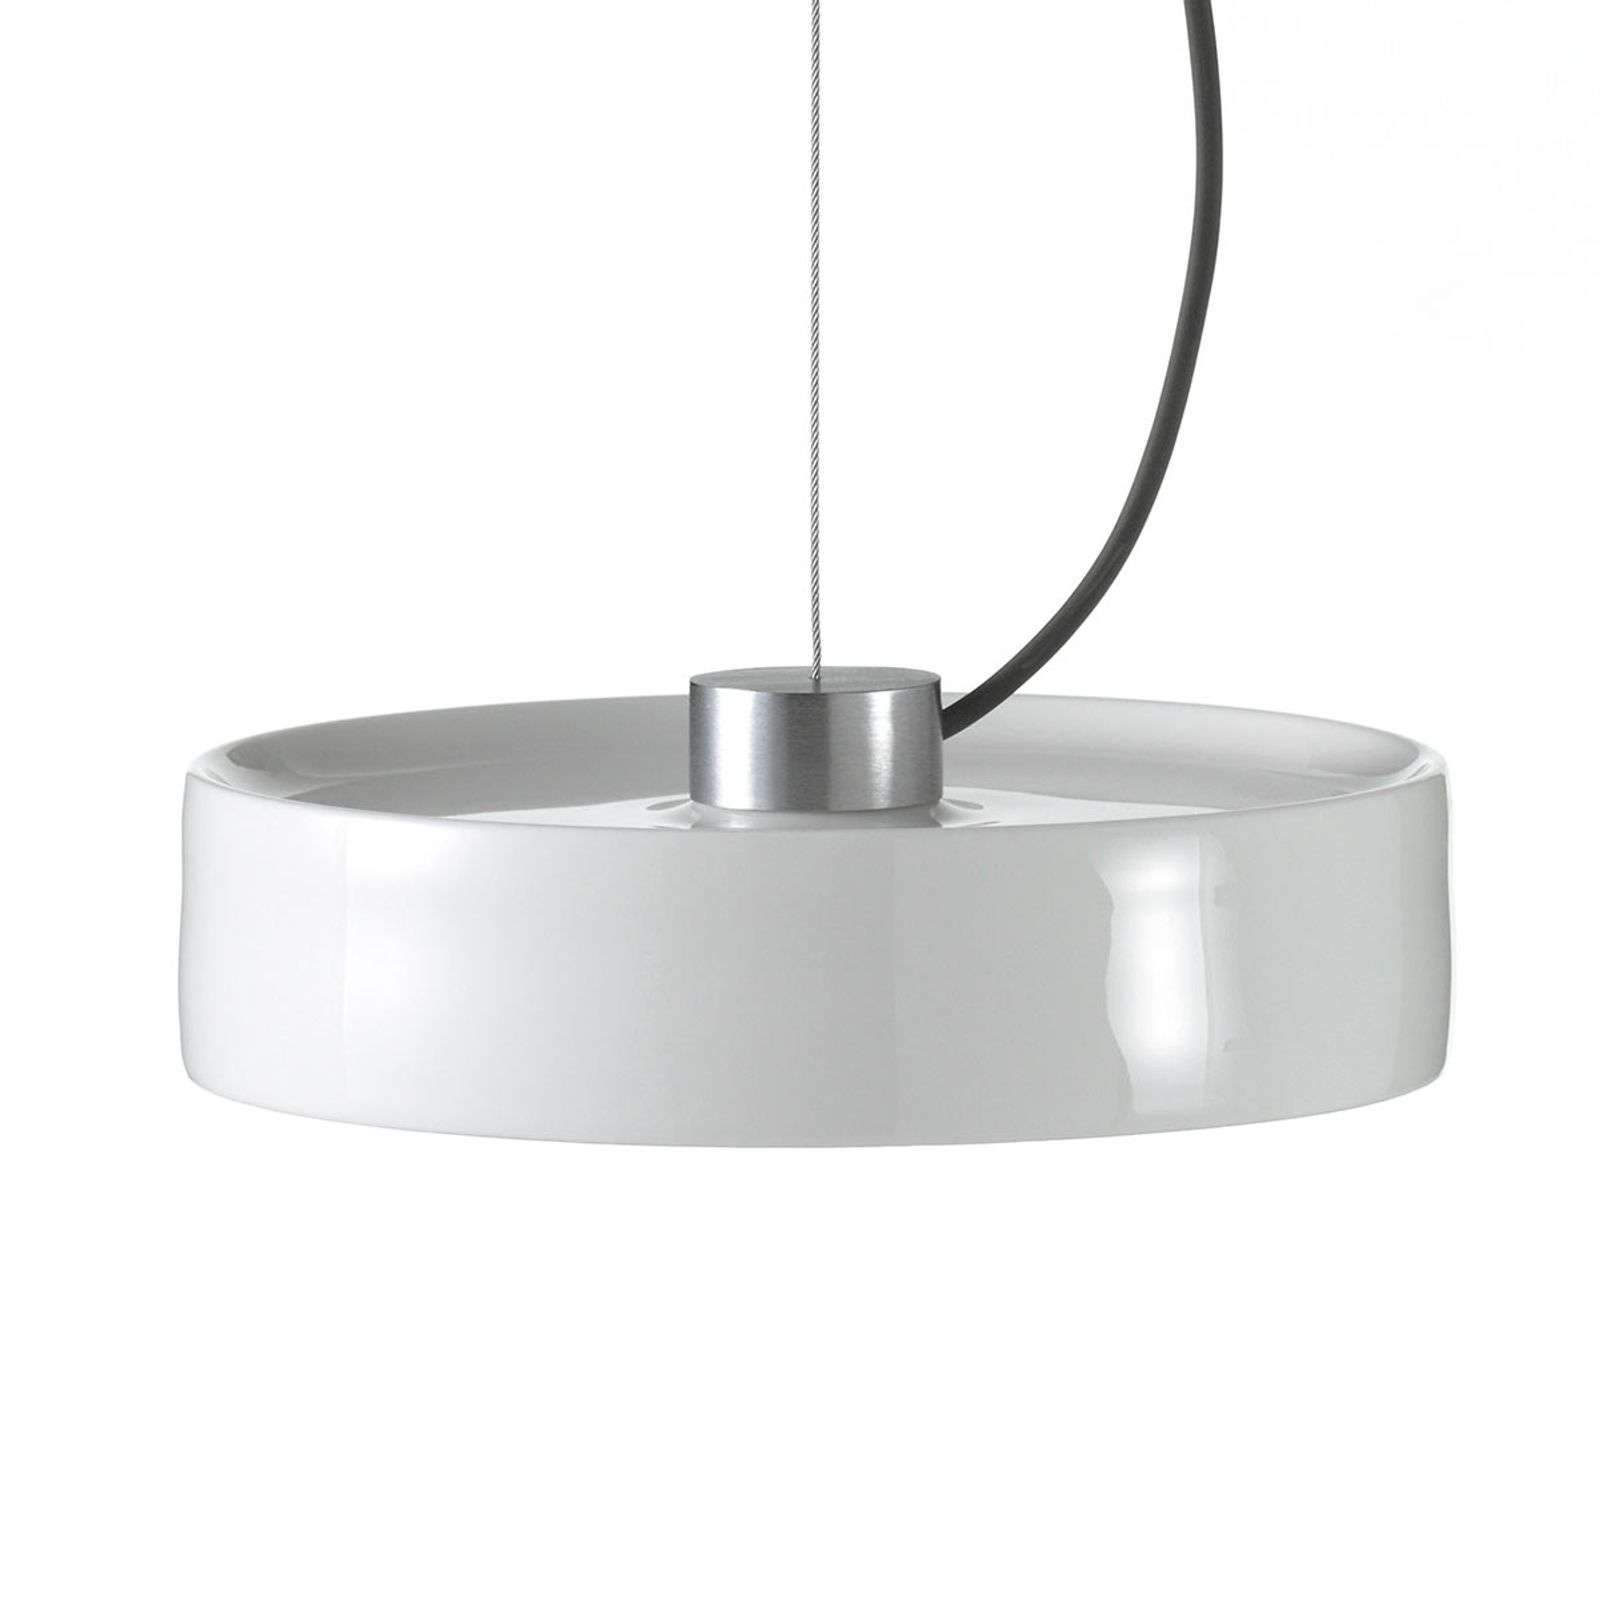 Suspension LED Maru avec abat-jour en porcelaine